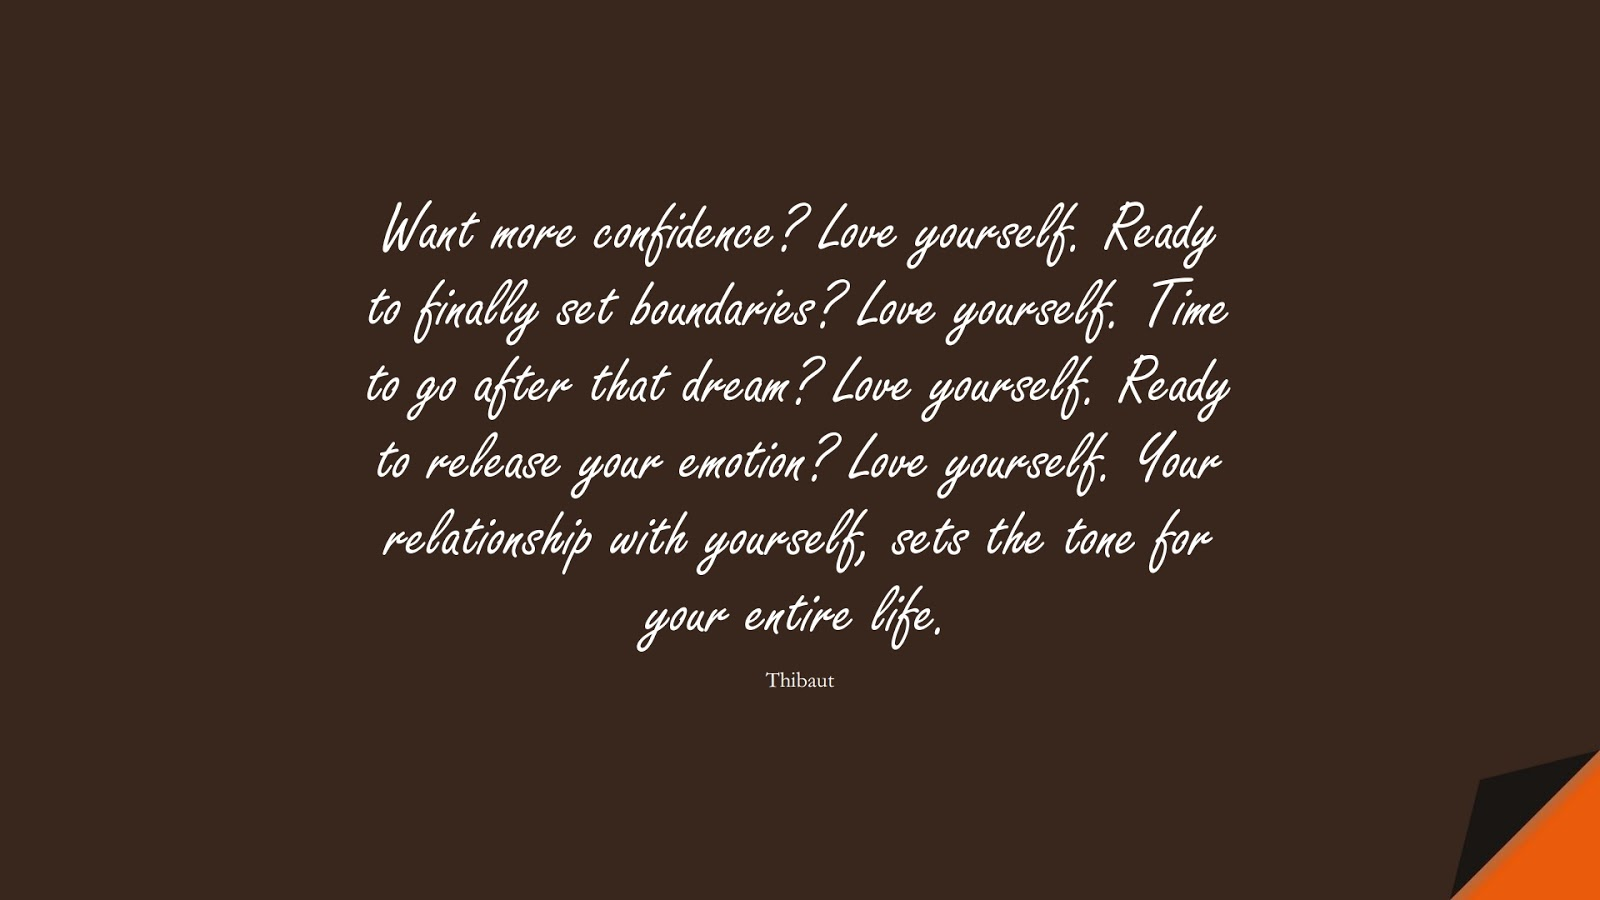 Want more confidence? Love yourself. Ready to finally set boundaries? Love yourself. Time to go after that dream? Love yourself. Ready to release your emotion? Love yourself. Your relationship with yourself, sets the tone for your entire life. (Thibaut);  #LoveYourselfQuotes